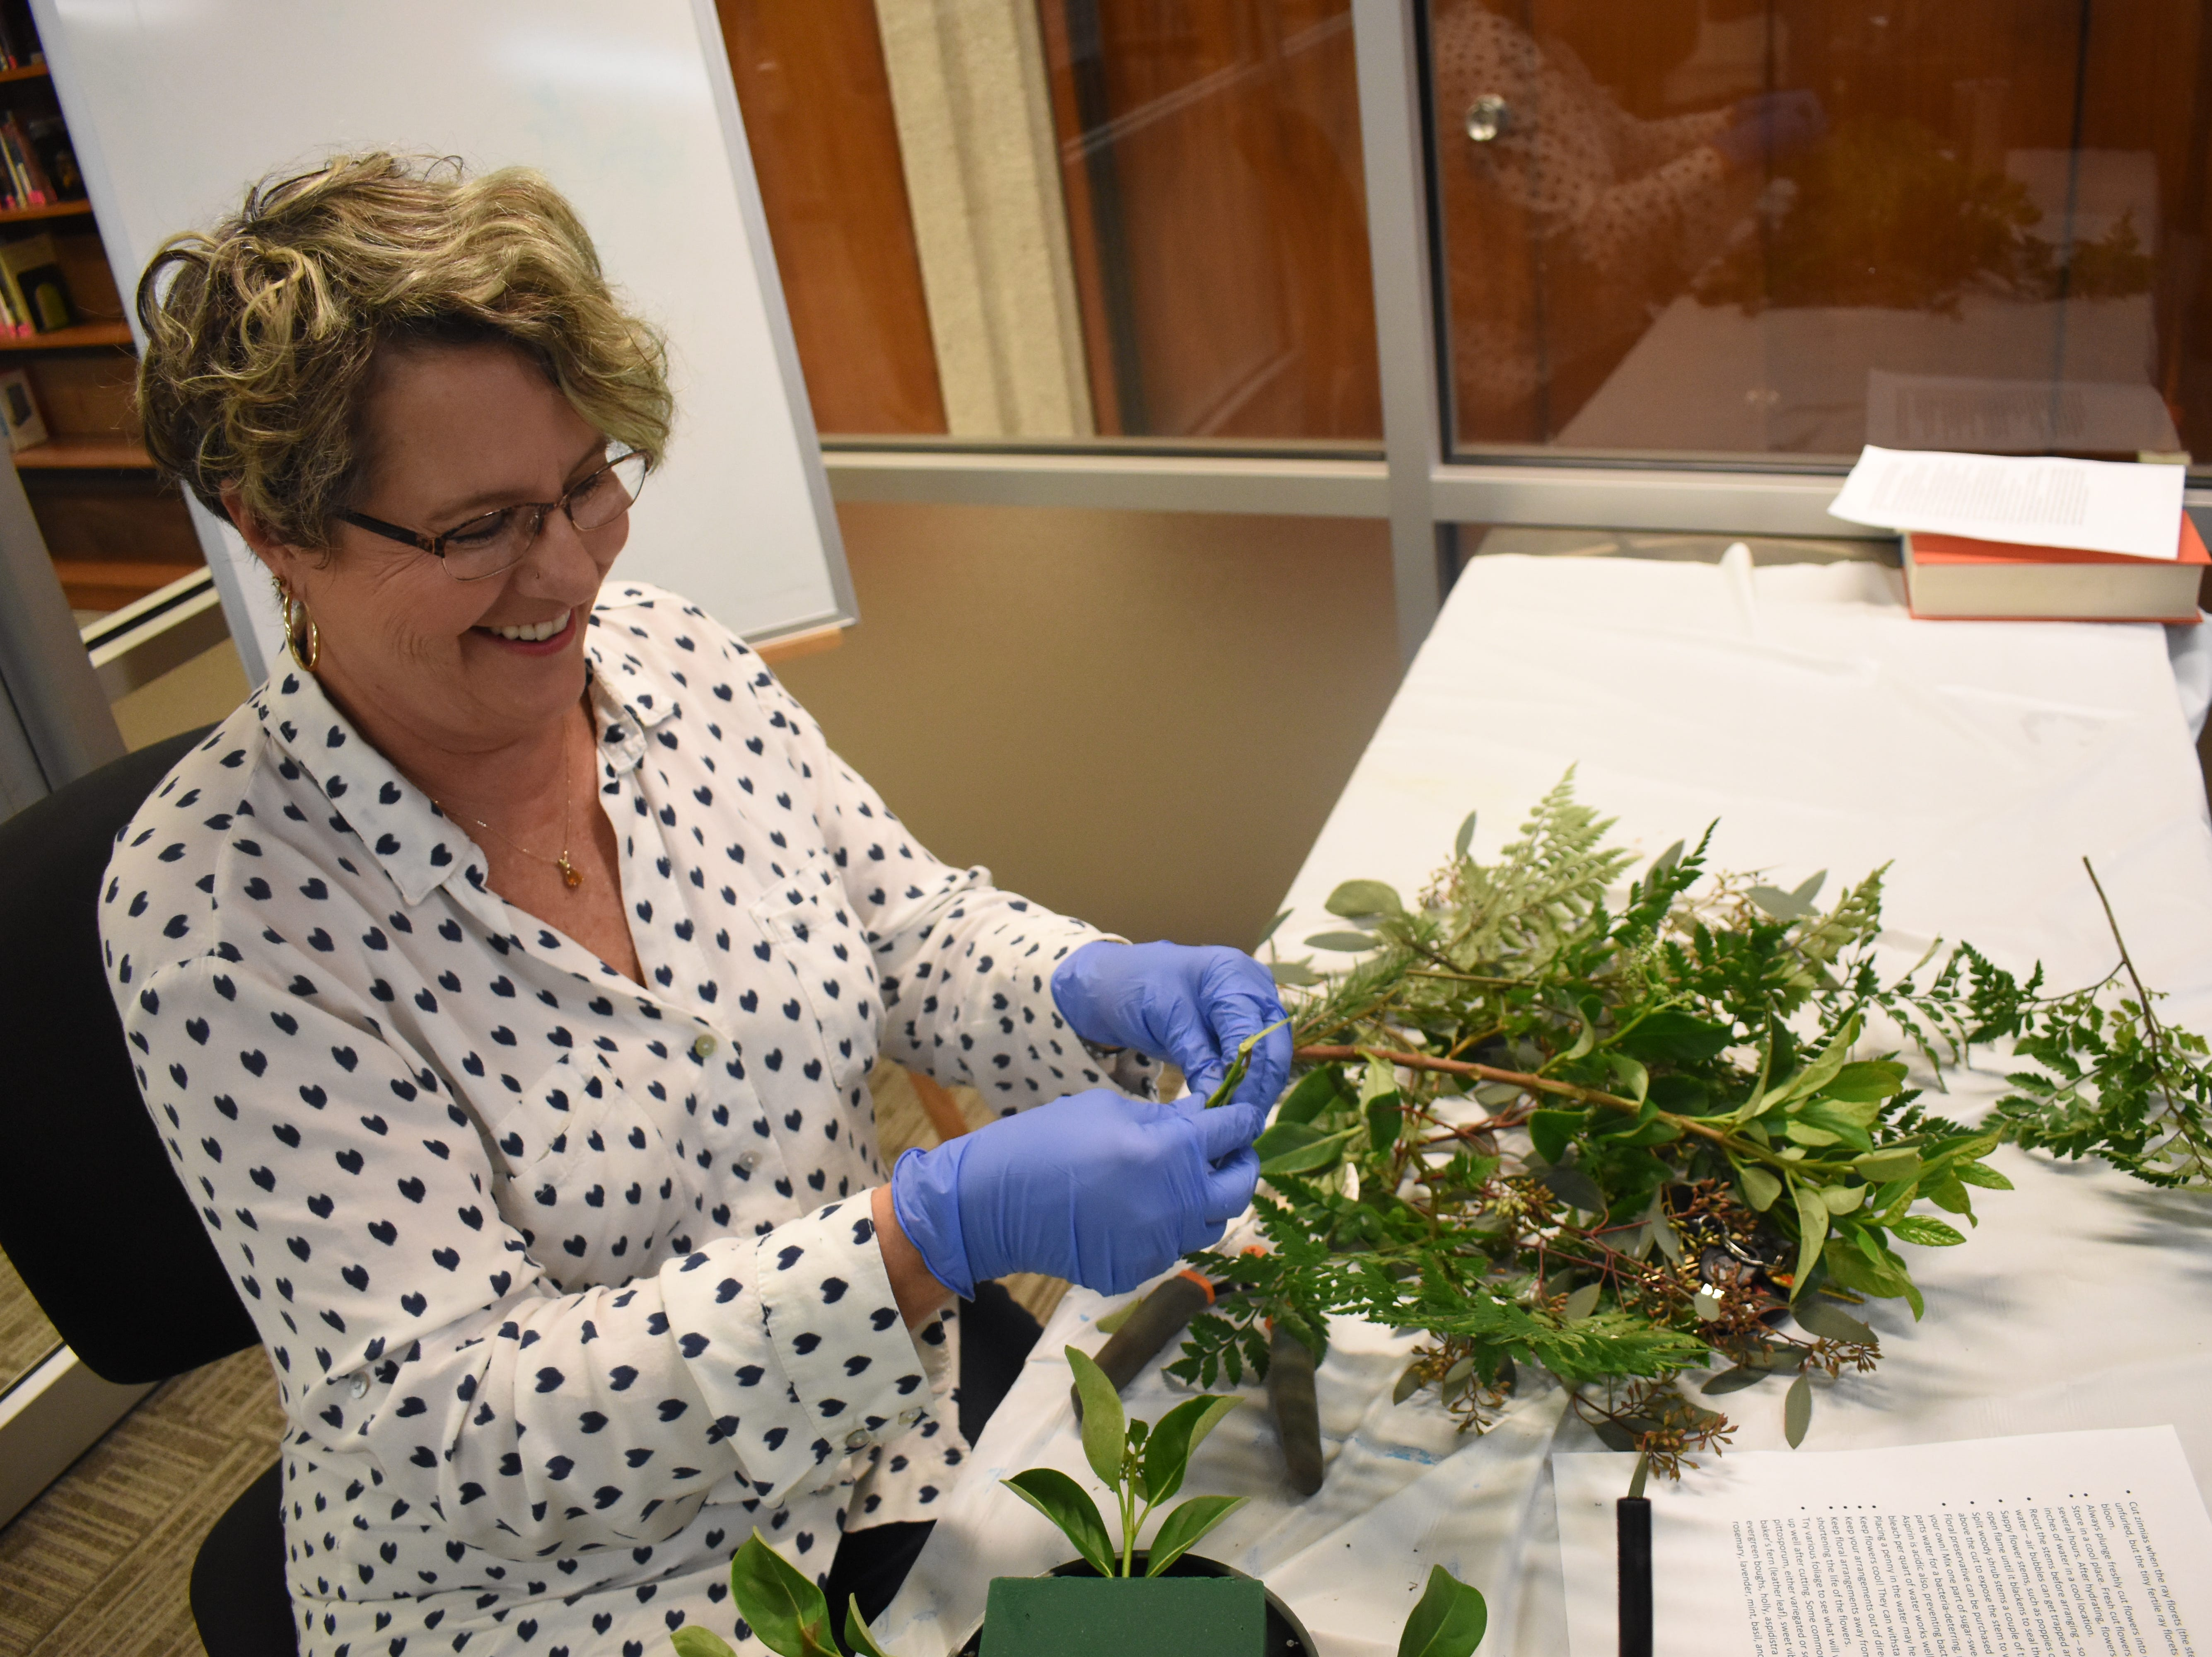 "Sonia Chevallier works on a floral arrangement in a class, ""Flowers For Your Sweetheart"" taught by Frances Boudreaux, a licensed florist, at the Main Library of the Rapides Parish Library Wednesday, Feb. 6, 2019. Some of the tips Boudreaux told participants was to try various foliage to see what works best for them. She recommended cutting garden flowers in the morning when flowers are full of moisture and the are is cooler. Flowers such as roses, iris, gladioli can be cut as buds and may open later. Marigolds, delphiniums and dianthus or sweet William, must be cut with they are open. Some of the common foliage that were used in the arrangements that can be found in Central Louisiana are pittosporum, either variegated or solid green; baker's fern or leather leaf; sweet viburnum, sweet olive, rosemary, ginger, evergreen boughs, holly, aspidistra or iron plant, and herbs such as rosemary, lavender, mint, basil and lemon balm. 